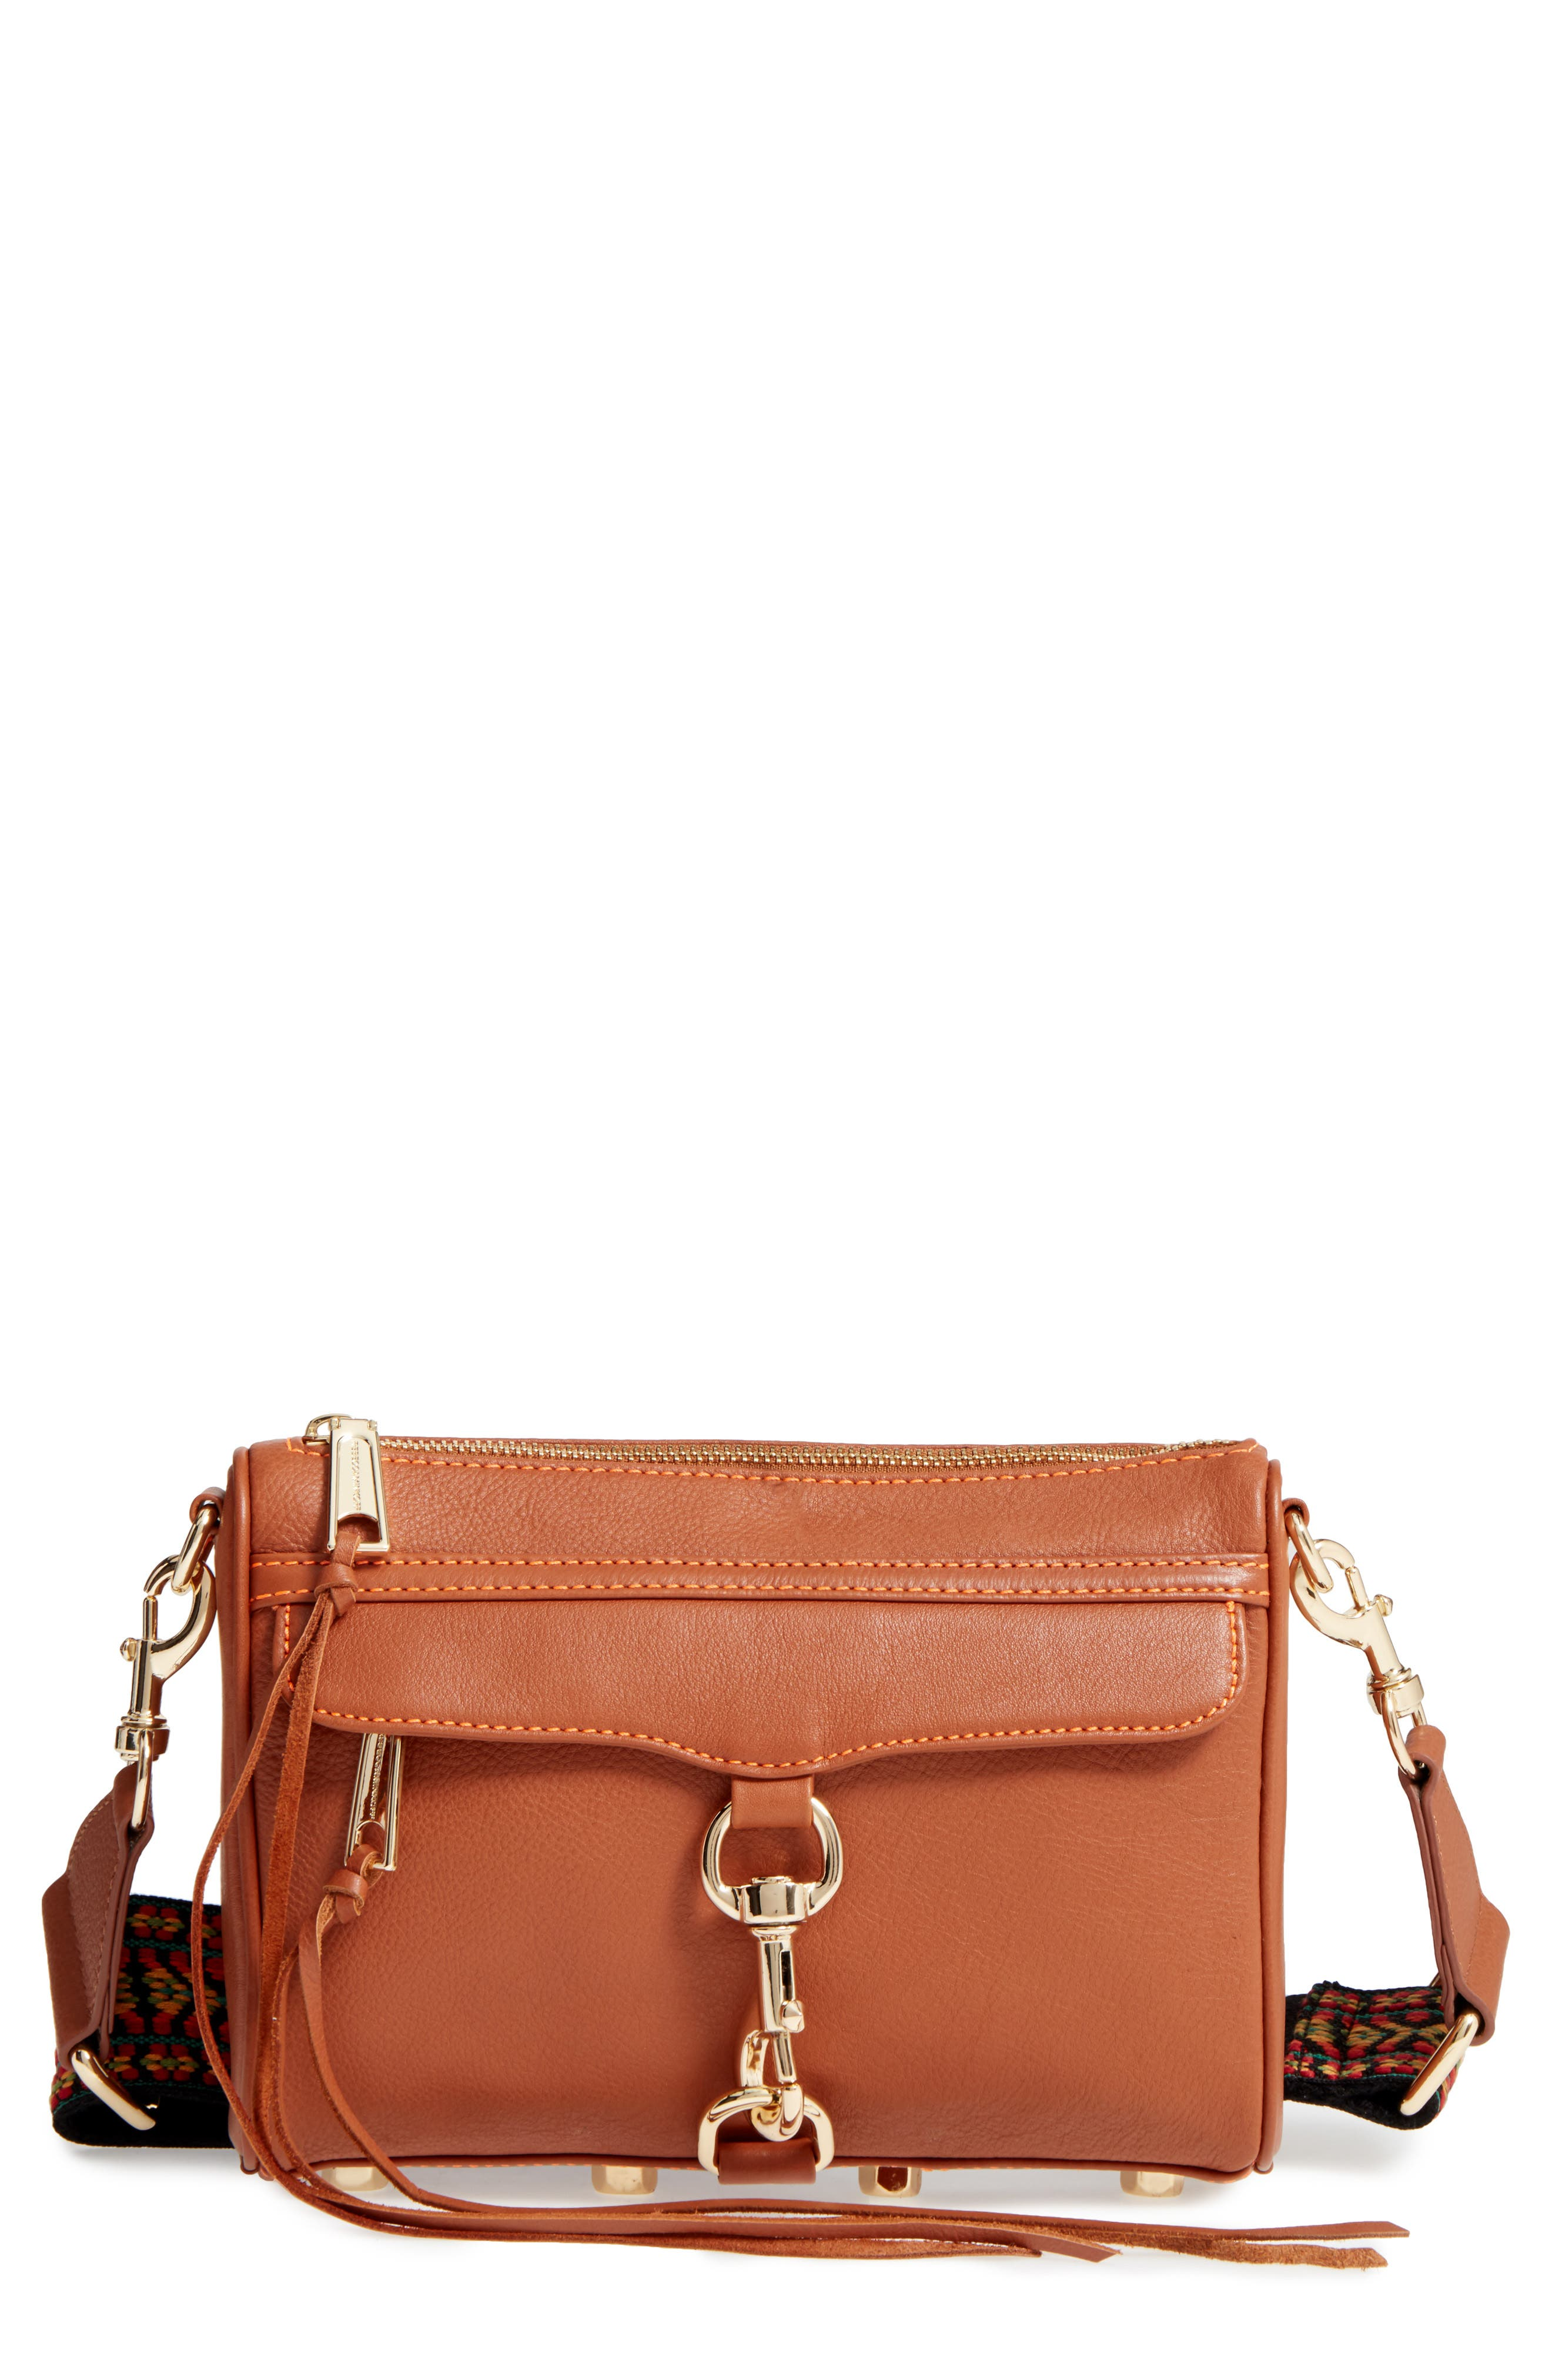 Rebecca Minkoff Mini MAC Leather Crossbody Bag with Guitar Strap (Nordstrom Exclusive)